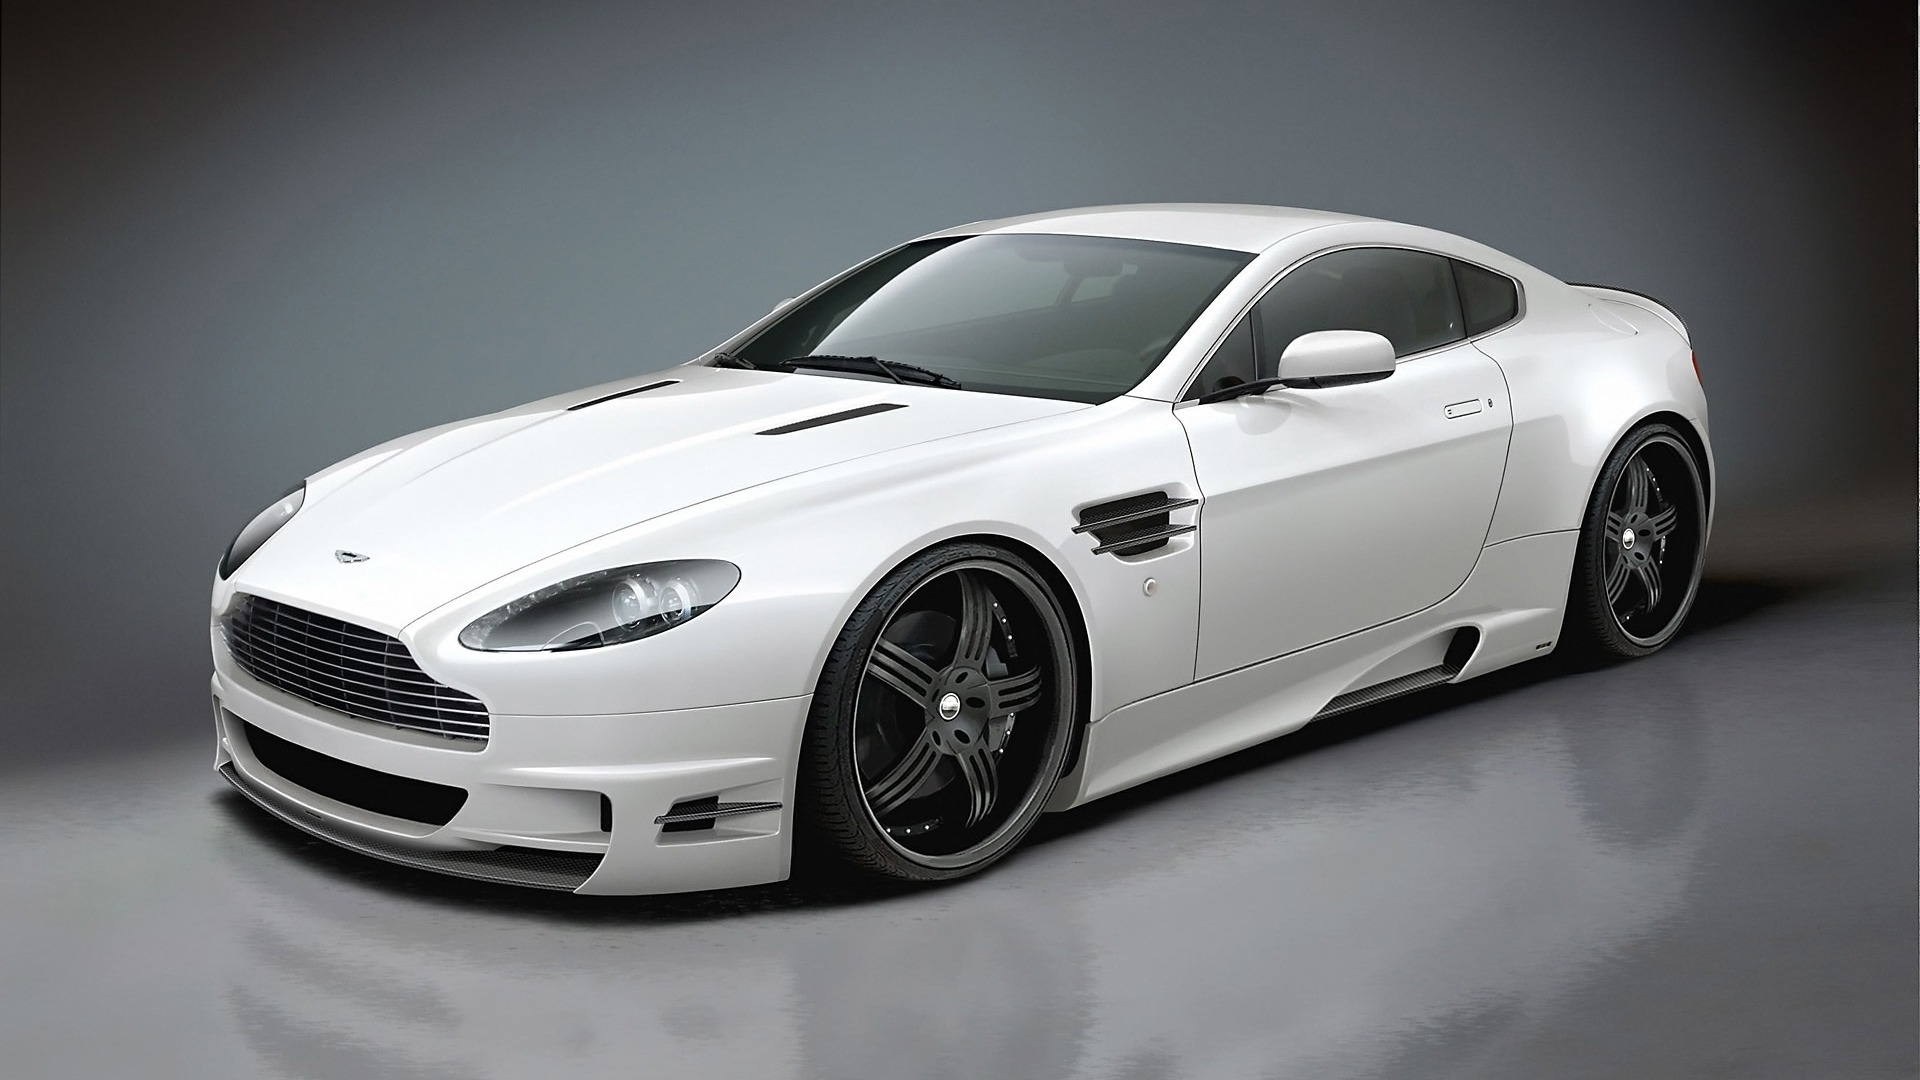 2014 White Aston Martin DB9